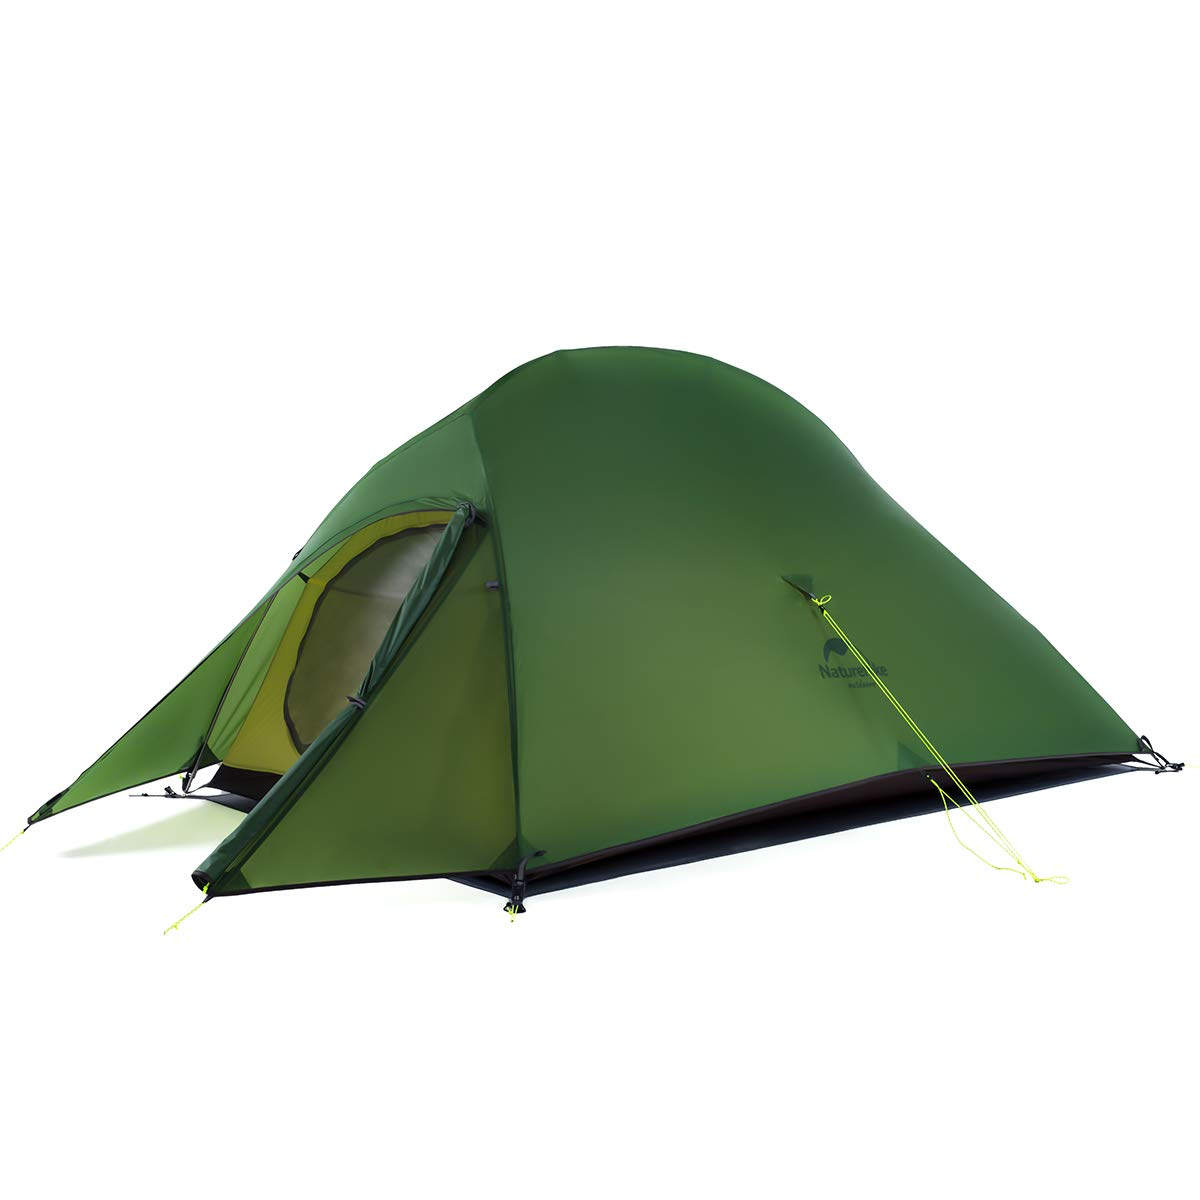 Naturehike Cloud Up 2 Person Lightweight Backpacking Tent with Footprint  4 Seasons